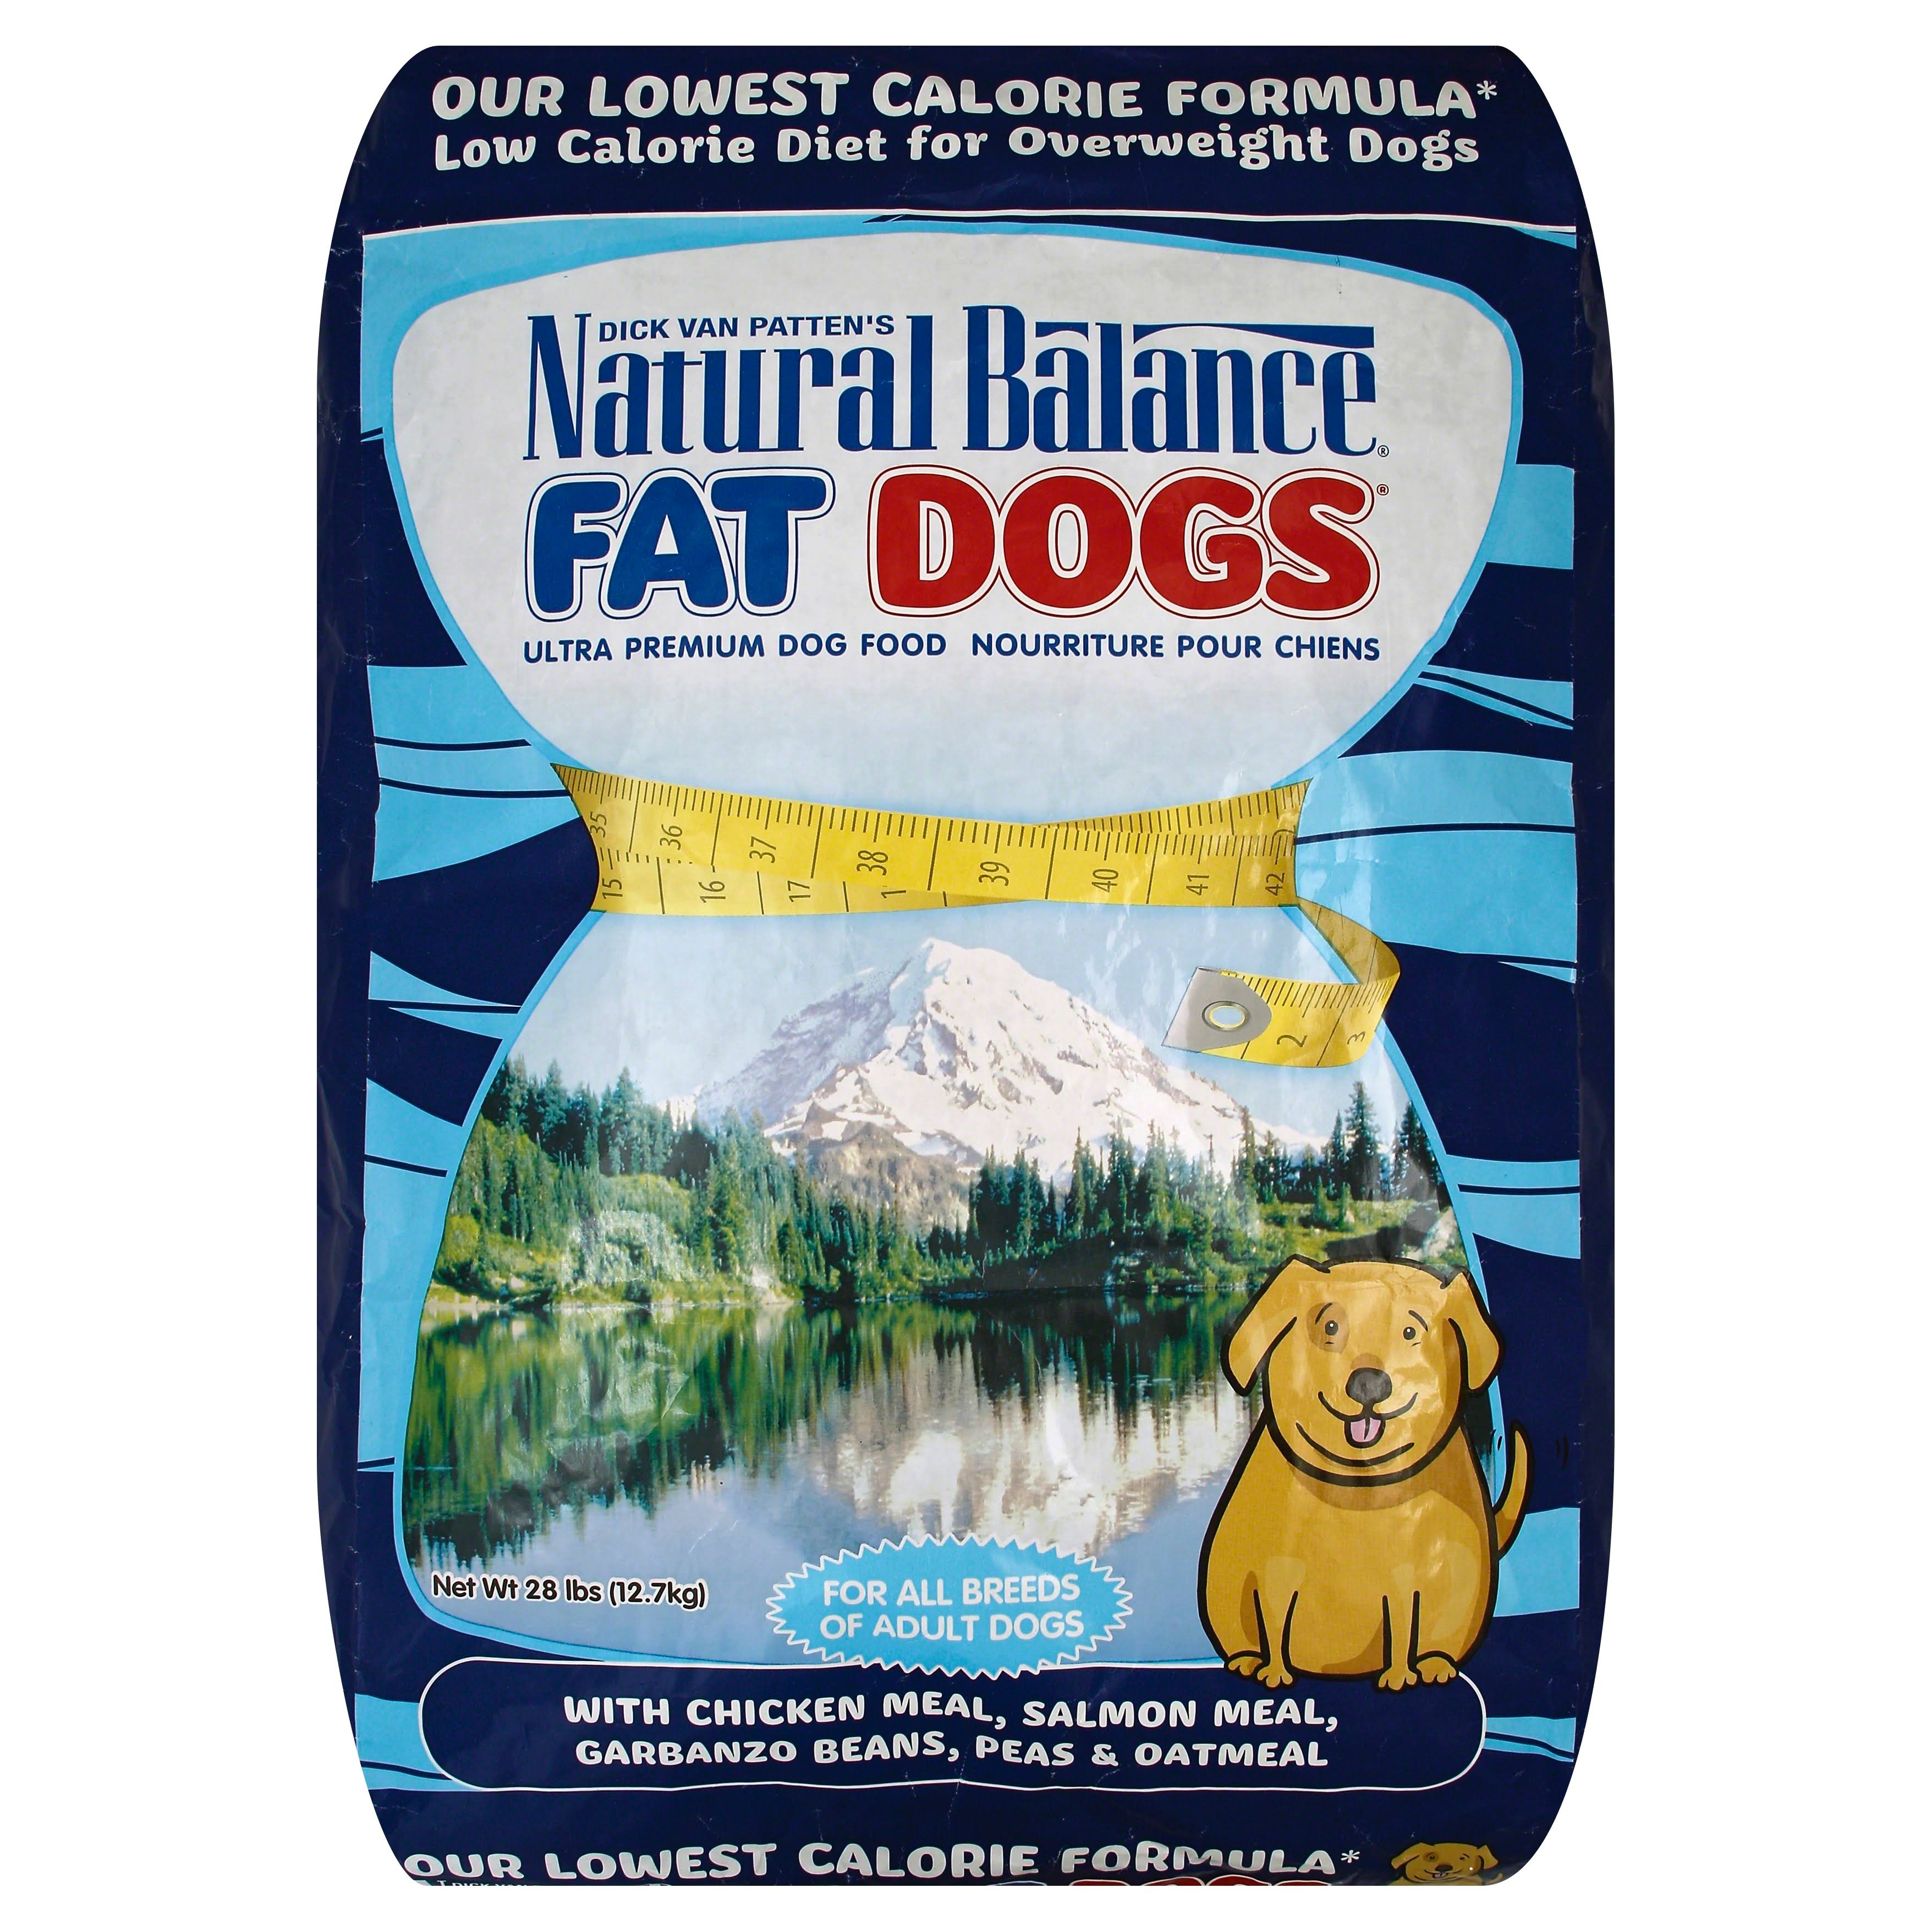 Natural Balance Fat Dogs Dry Dog Food - 28lb